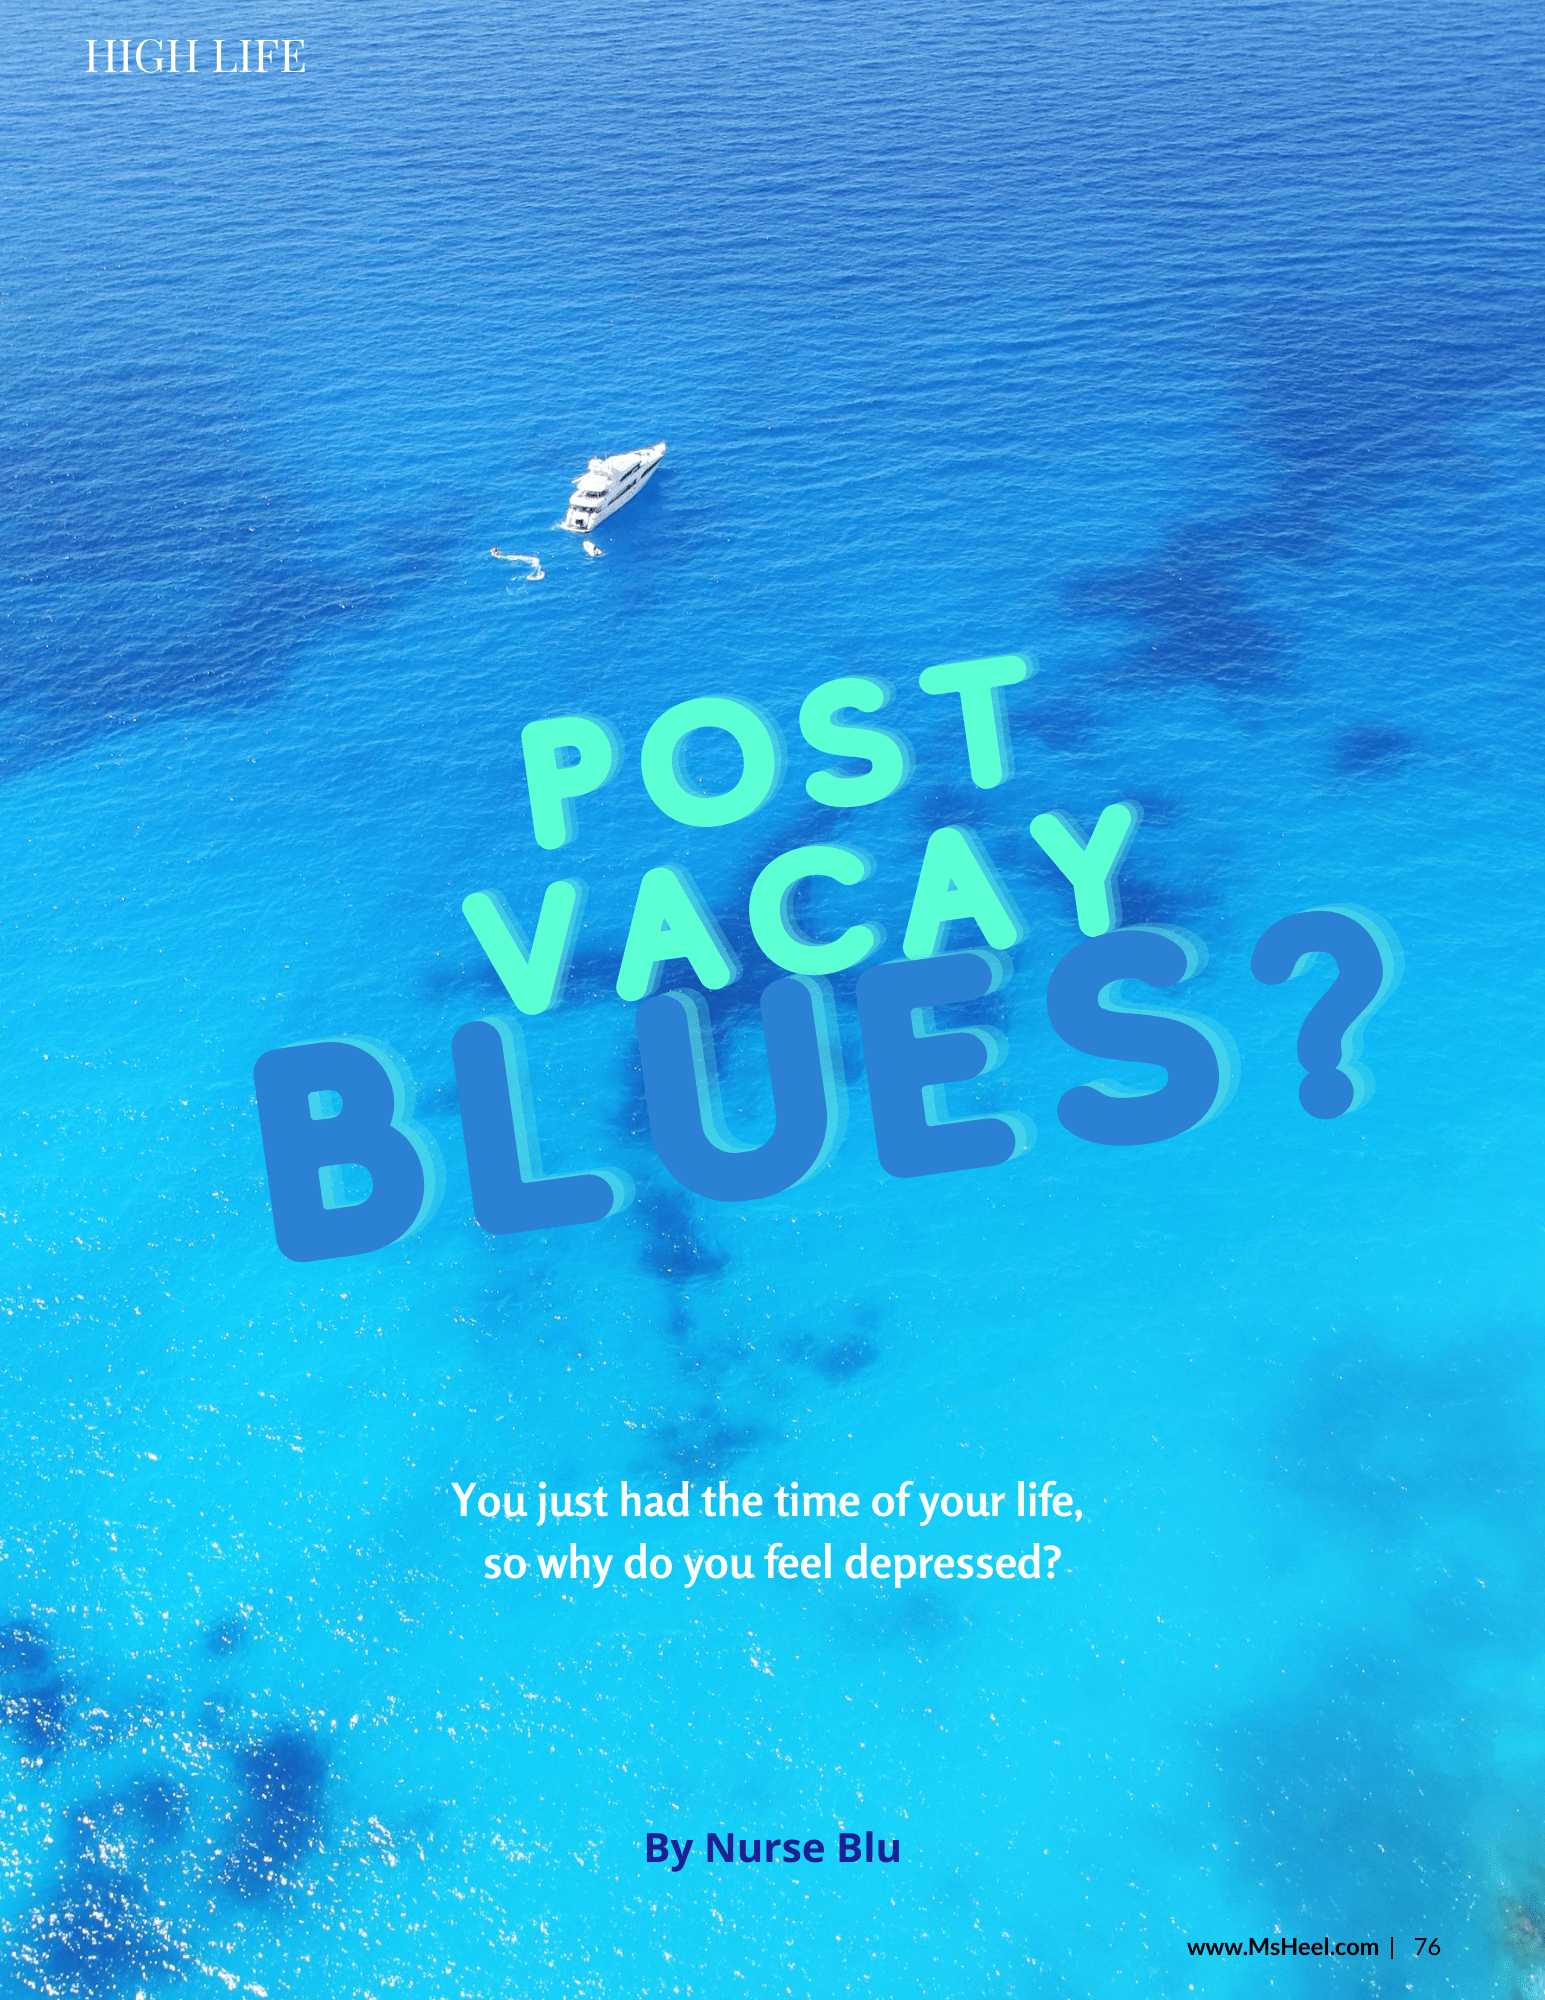 Post vacay blues...why you feel depressed.